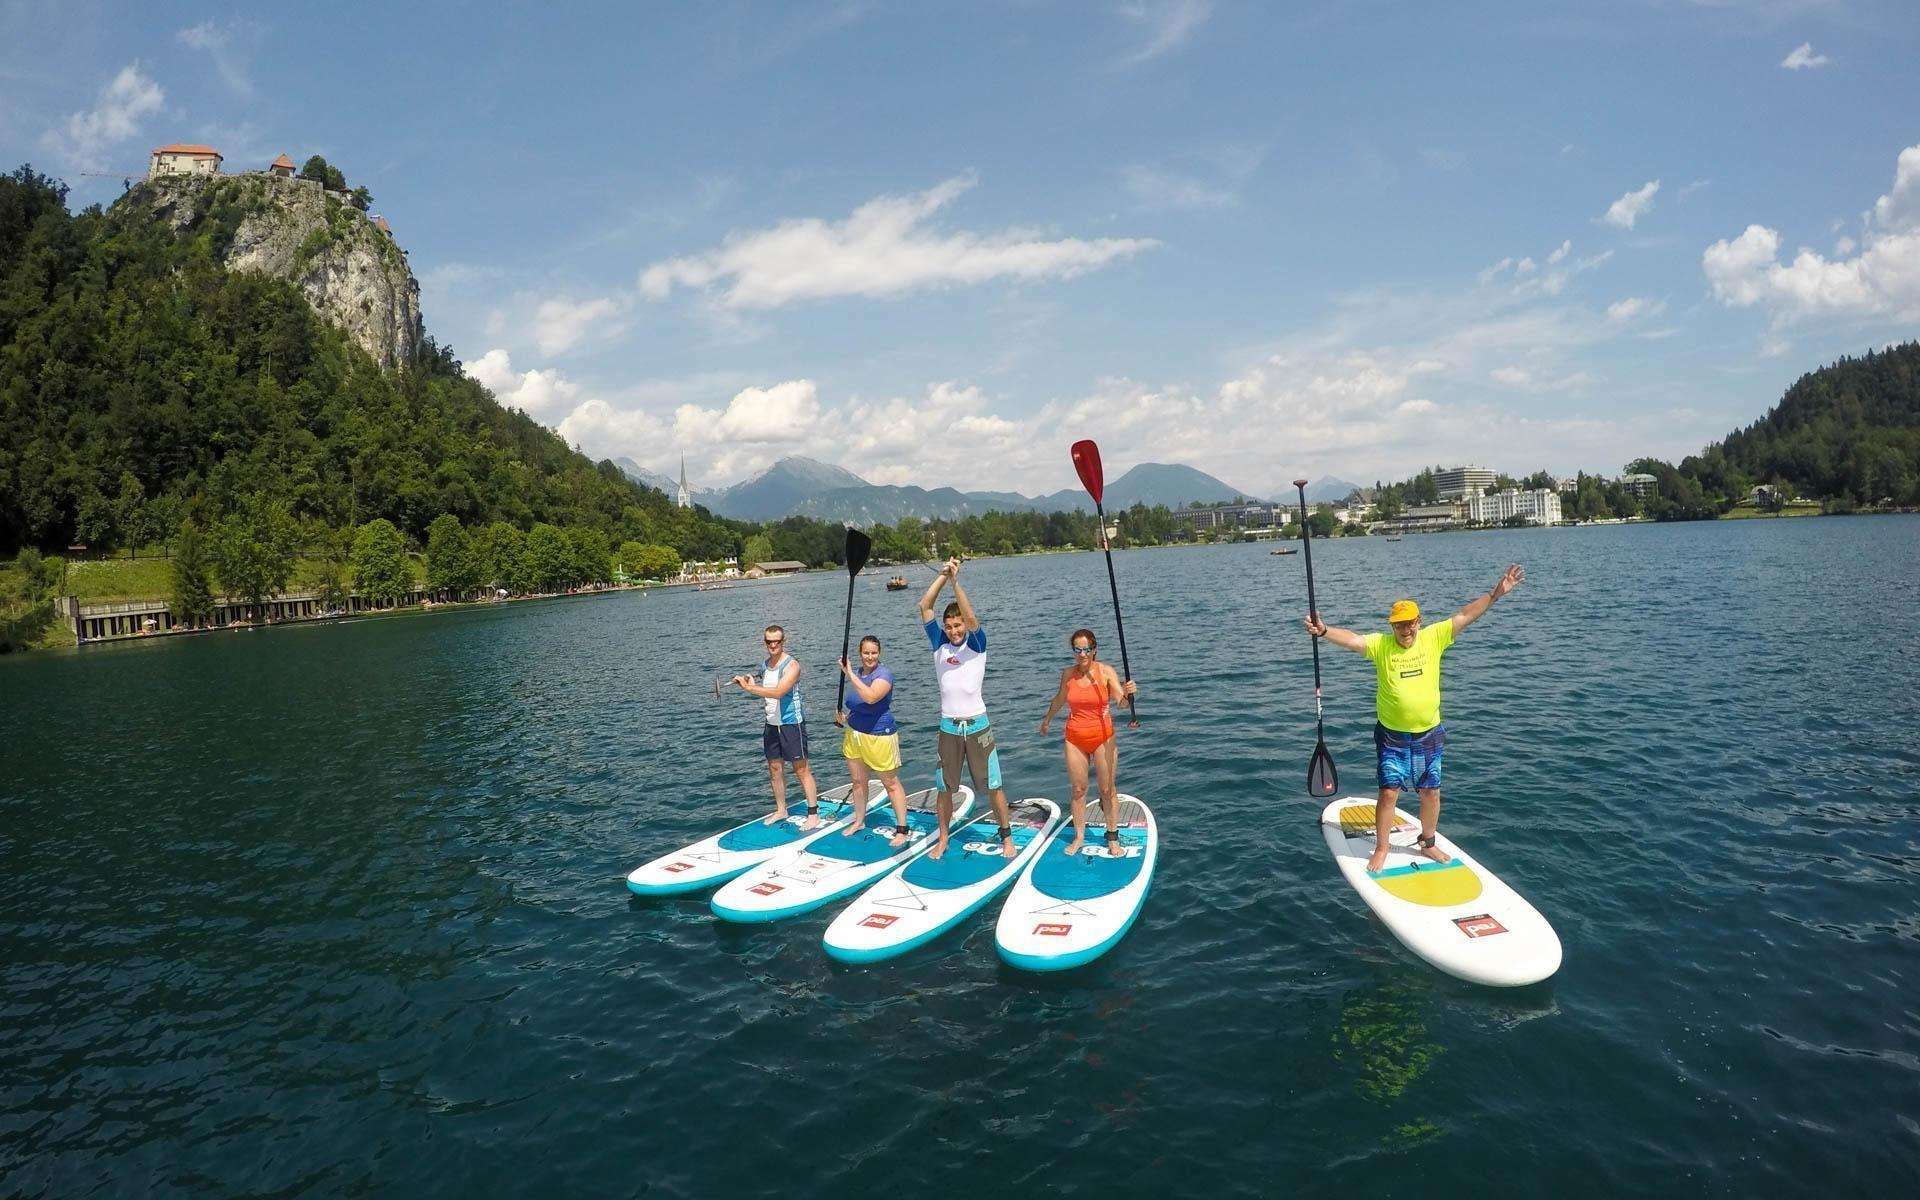 Active SUP Tour Day 3| Paddle boarding on lake Bled | Slovenia